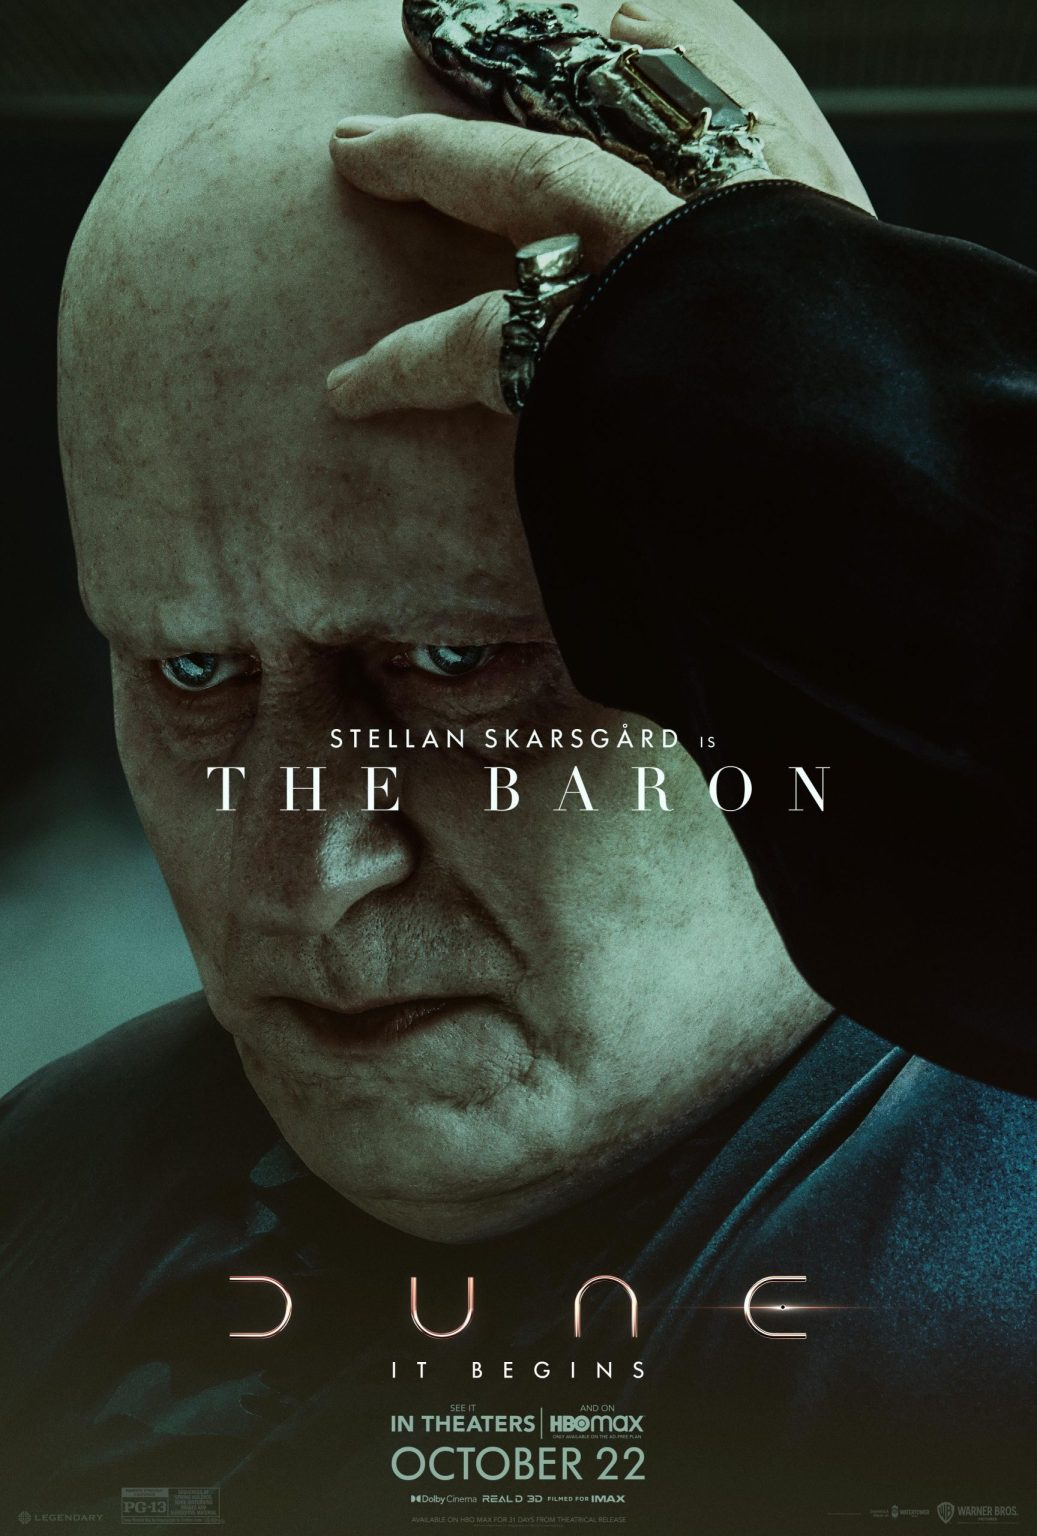 LES SORTIES CINE - Page 11 DUNE-VERT-Baron-2764x4096-DOM-scaled